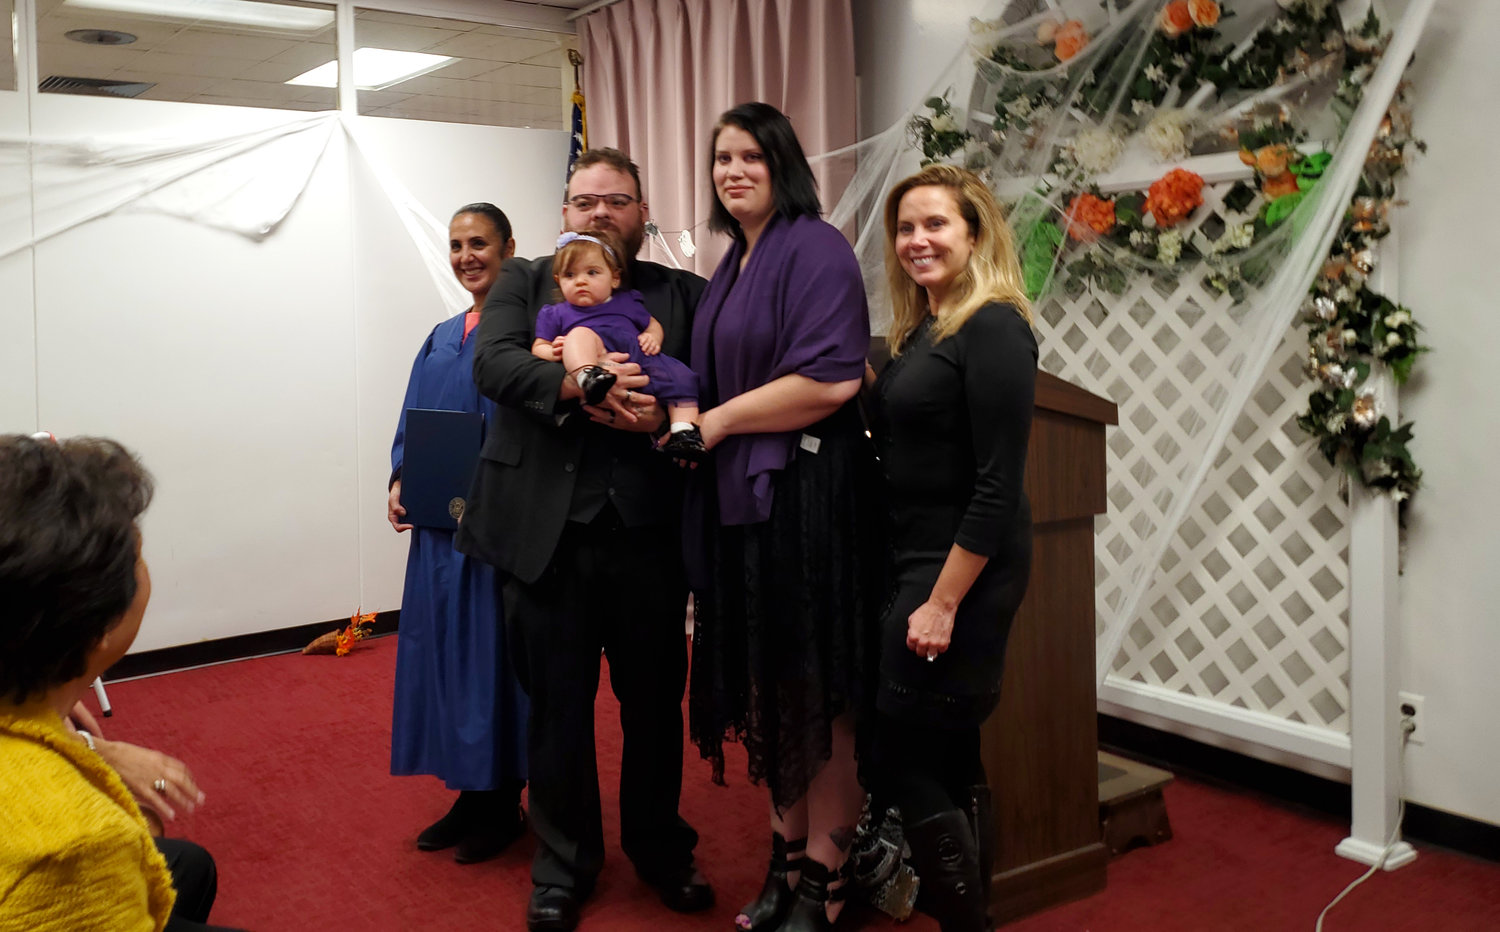 Hempstead Town Clerk Sylvia Cabana, left, officiated at the marriage of Alexander Castro, 30, of Seaford, and Amanda Caroleo, 27, of Garden City, on Halloween, with some assistance from Town Supervisor Laura Gillen.